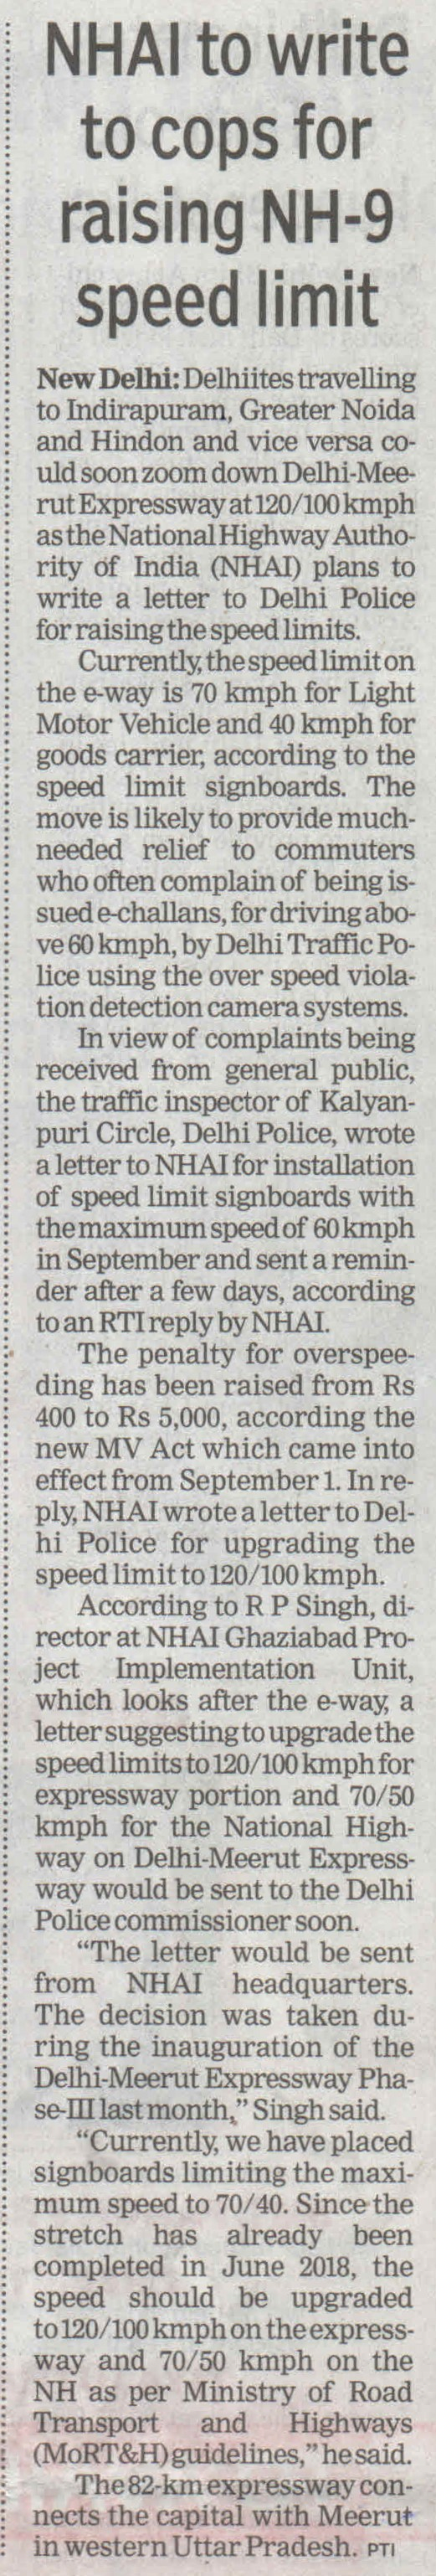 NHAI to write to cops for raising NH-9 speed limit